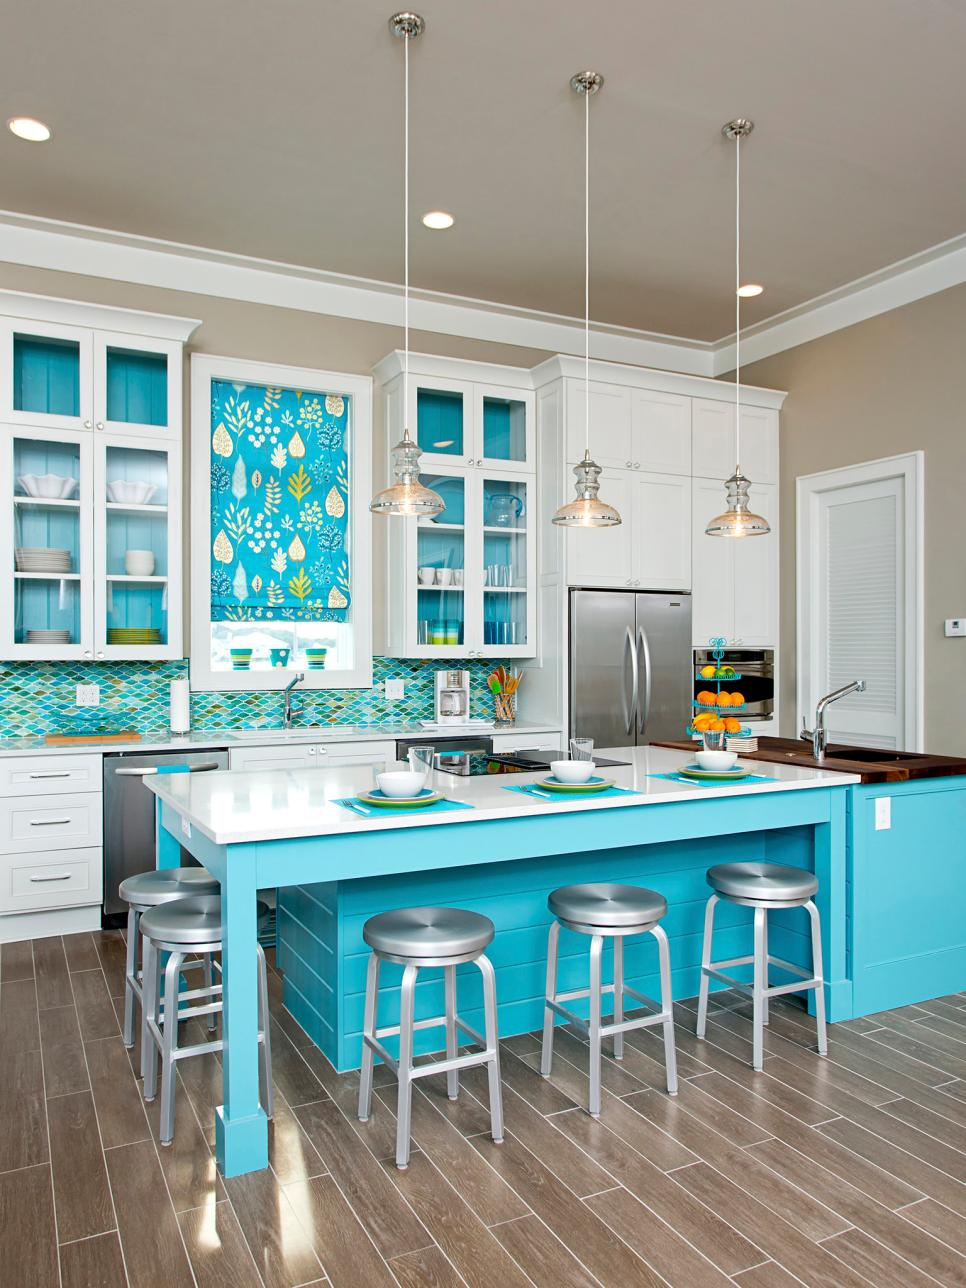 Charming Contemporary Coastal Kitchen Design